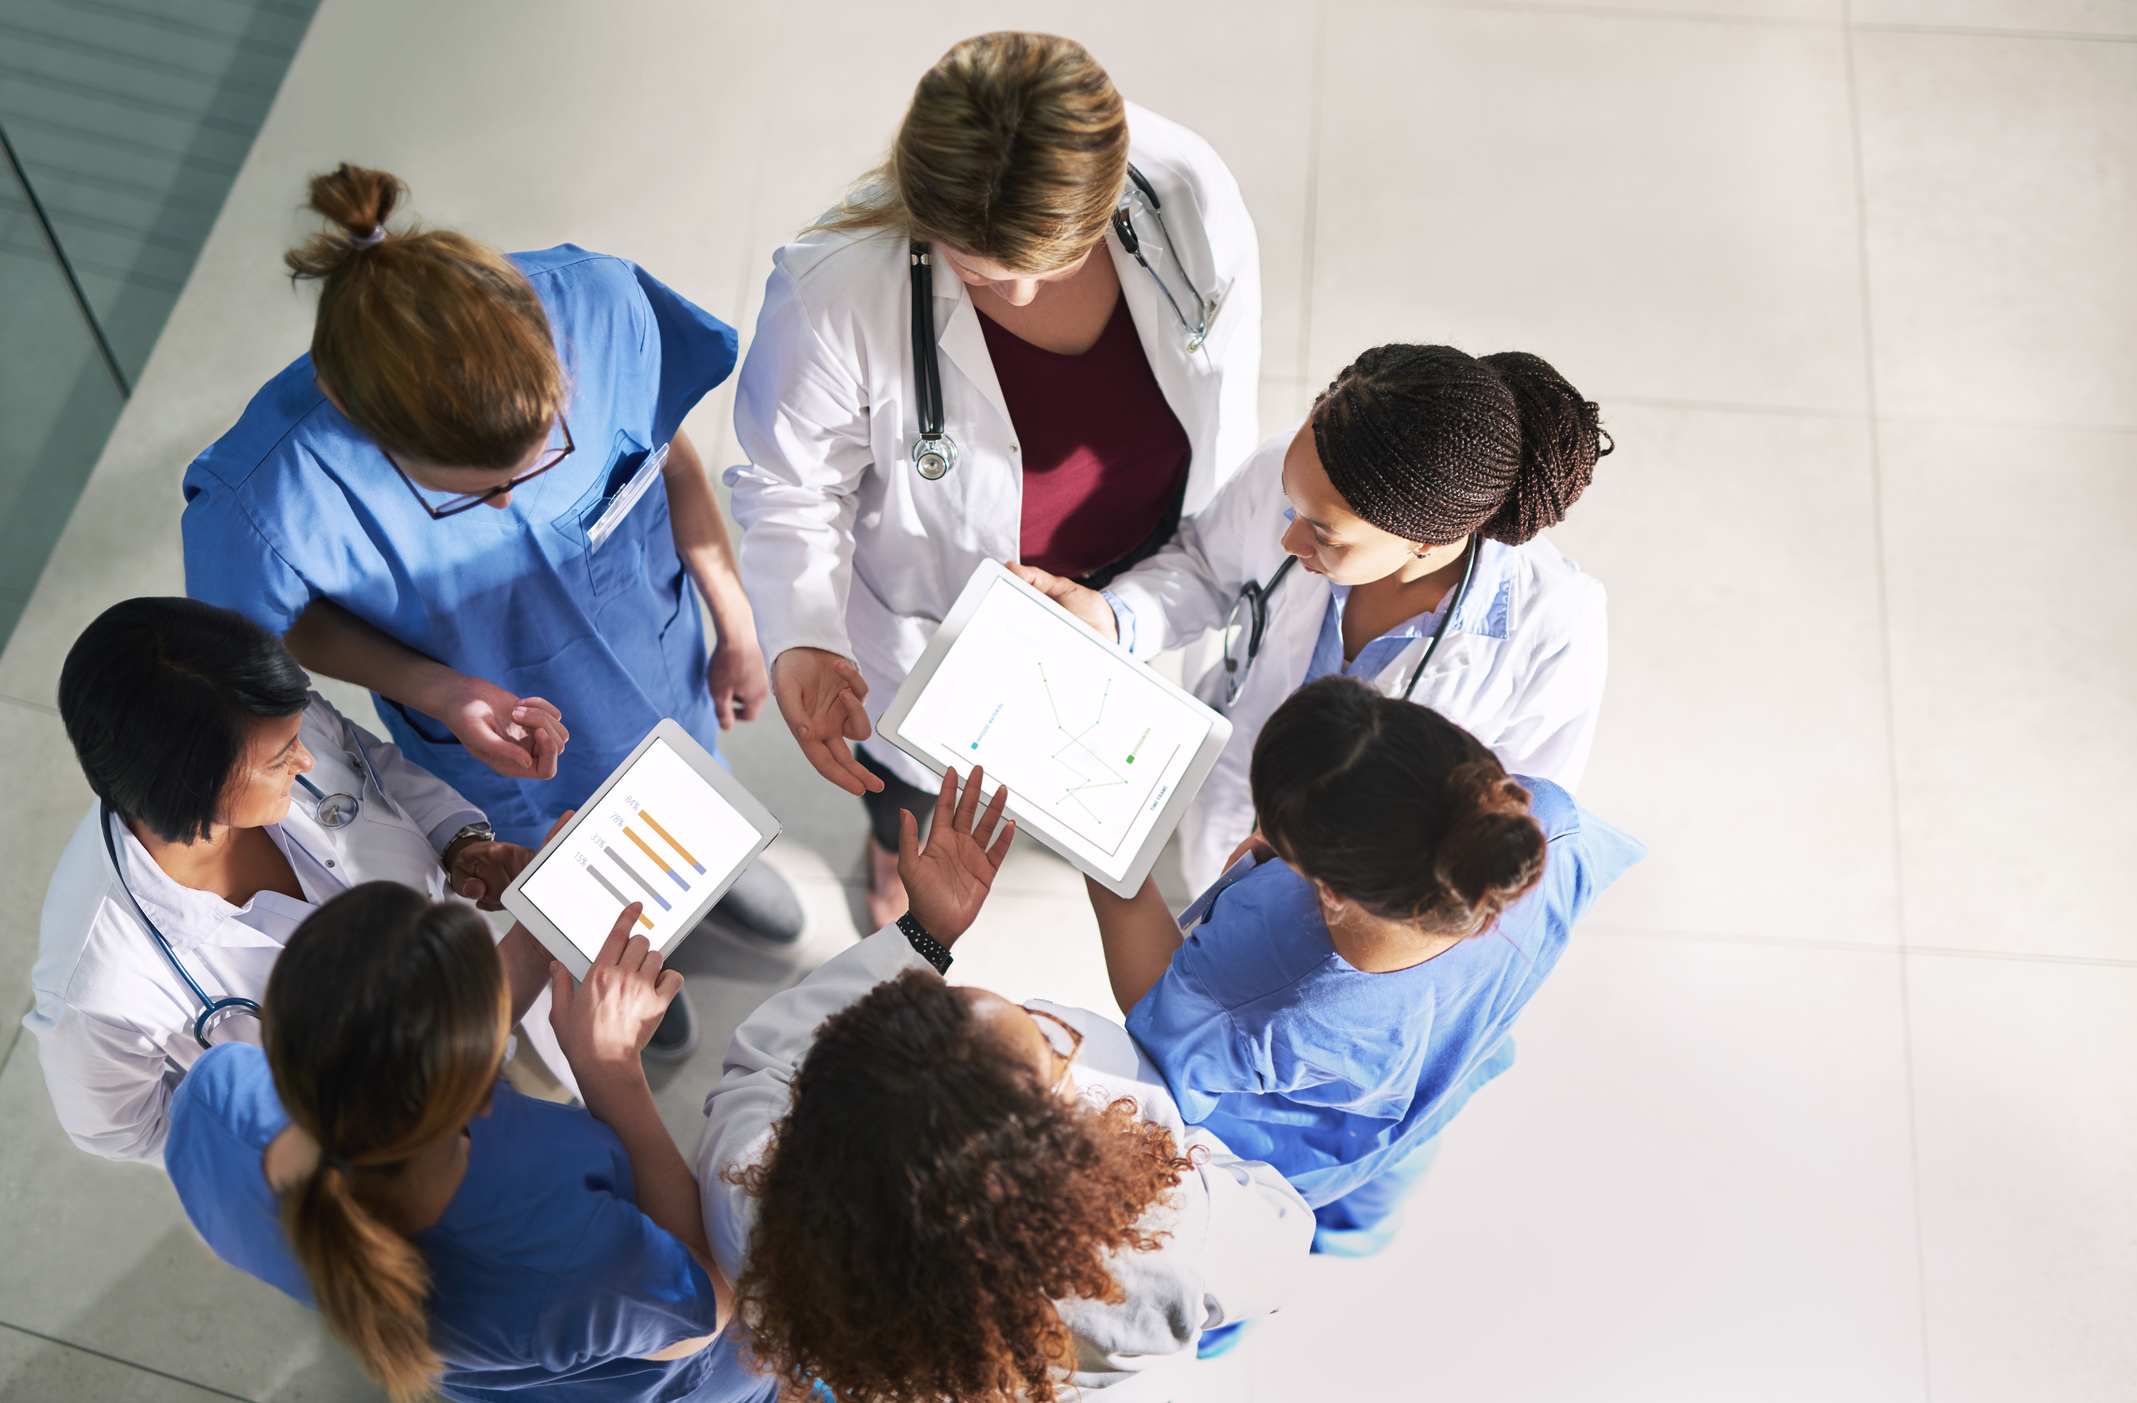 Overhead shot of a diverse group of healthcare workers